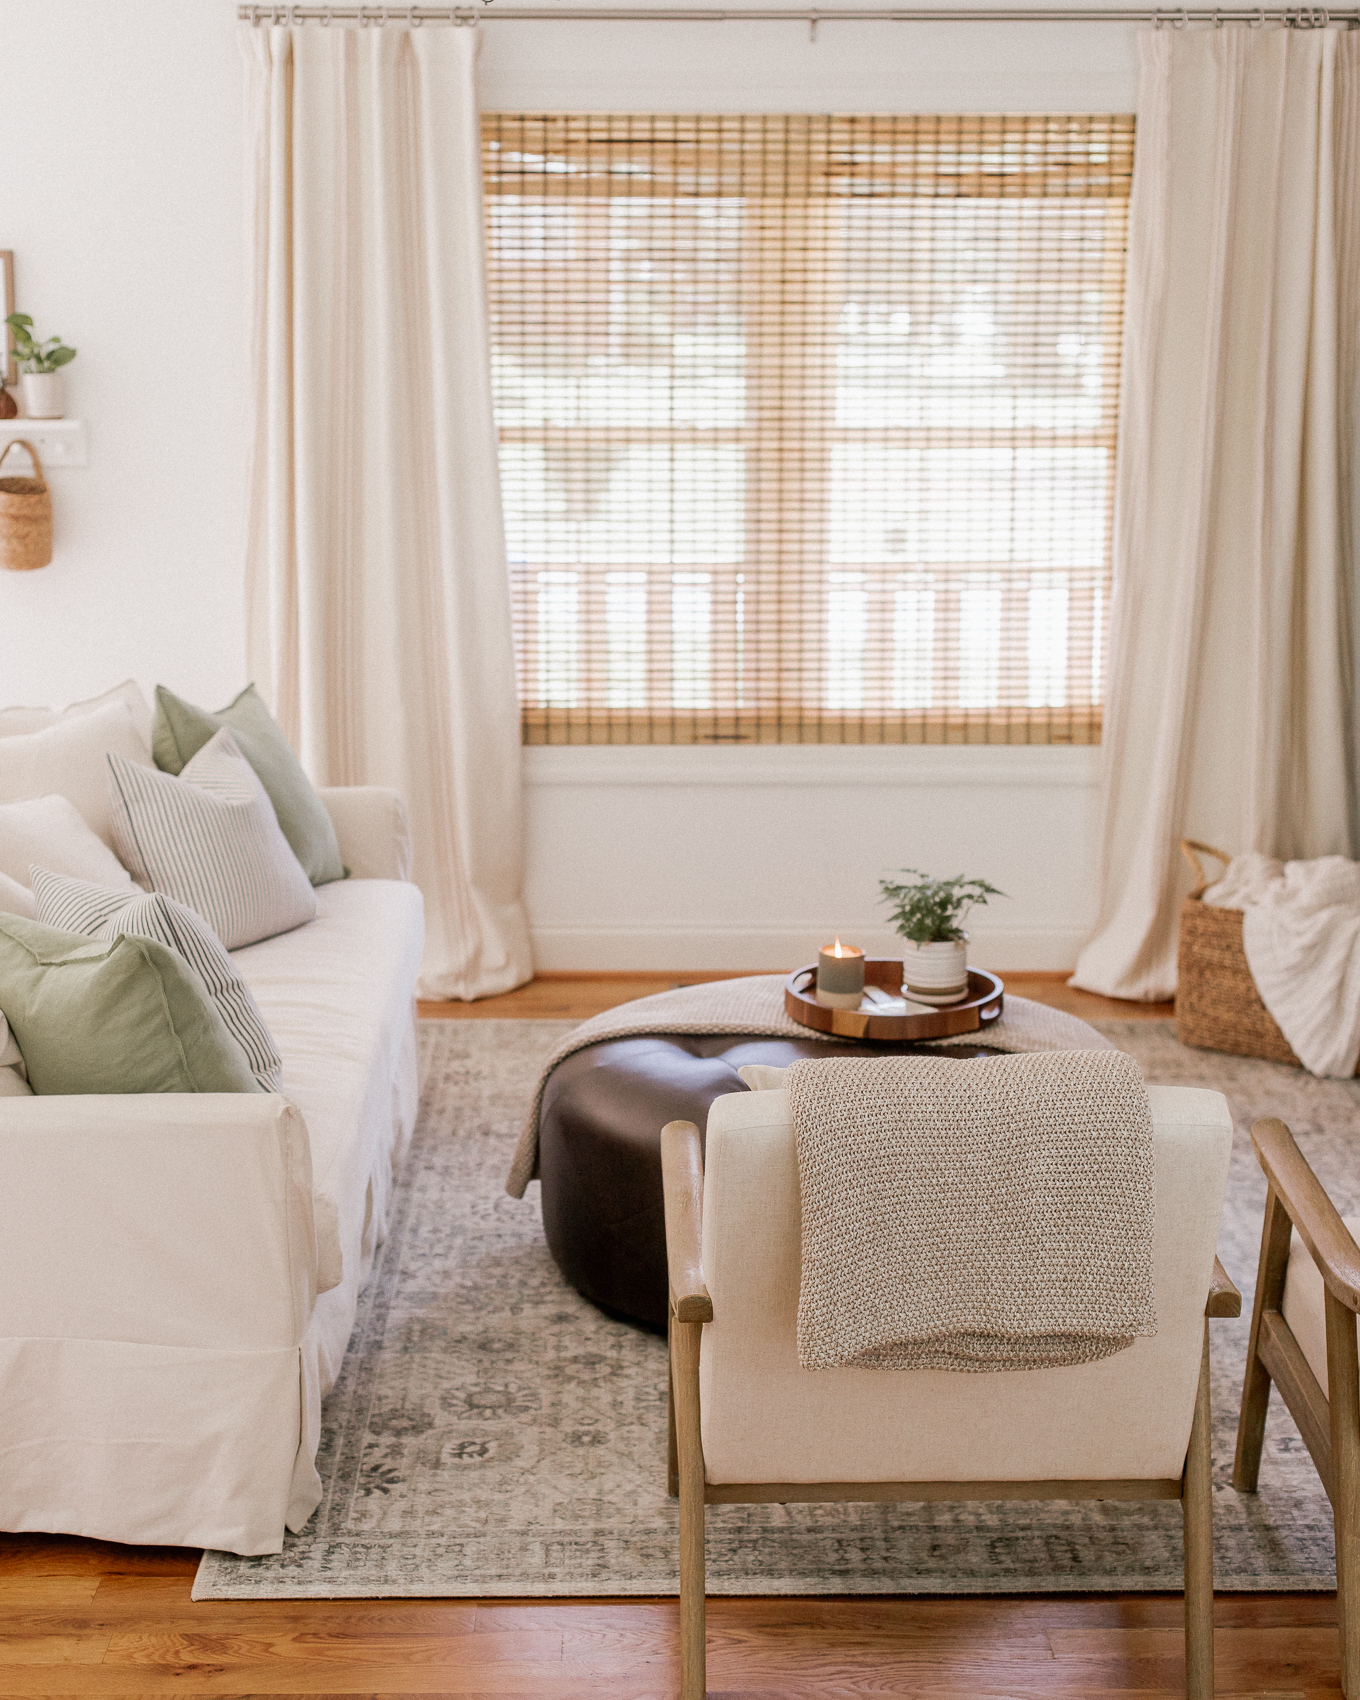 Five Reasons Why Every Rug Needs a Rug Pad | Lifestyle | Louella Reese